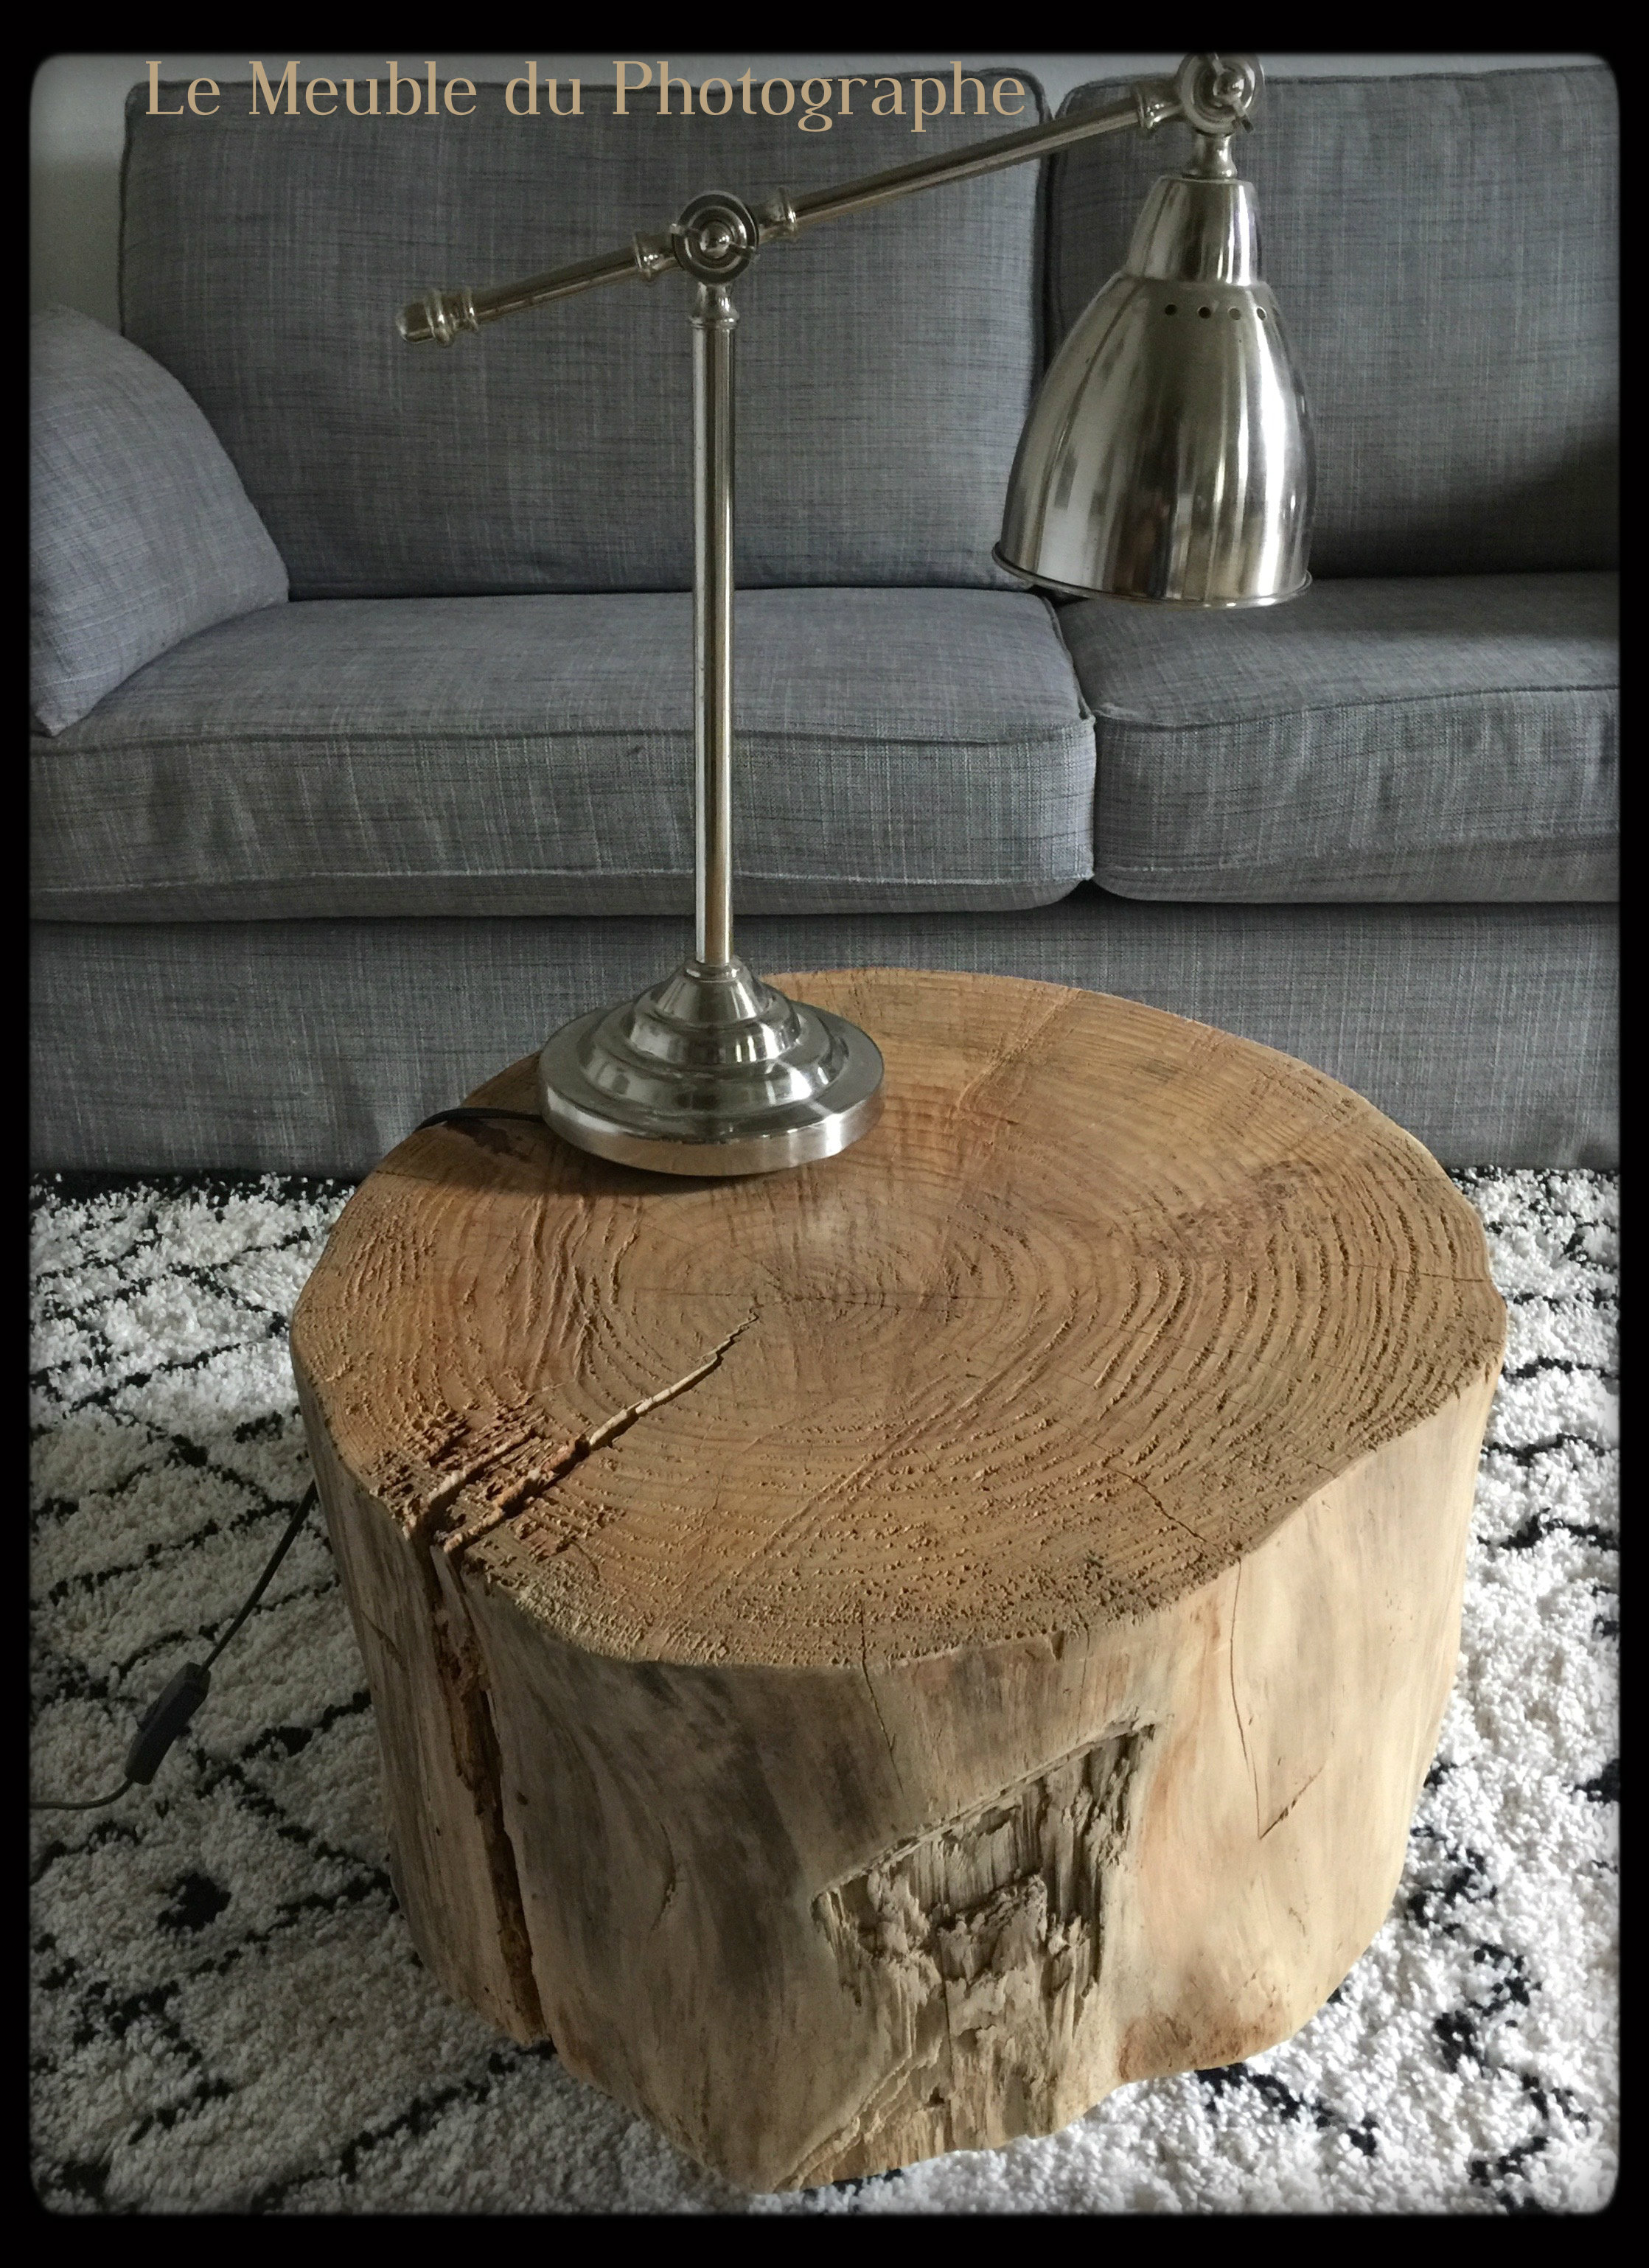 Table basse tronc d 39 arbre sur roulettes le meuble du for Le meuble du photographe